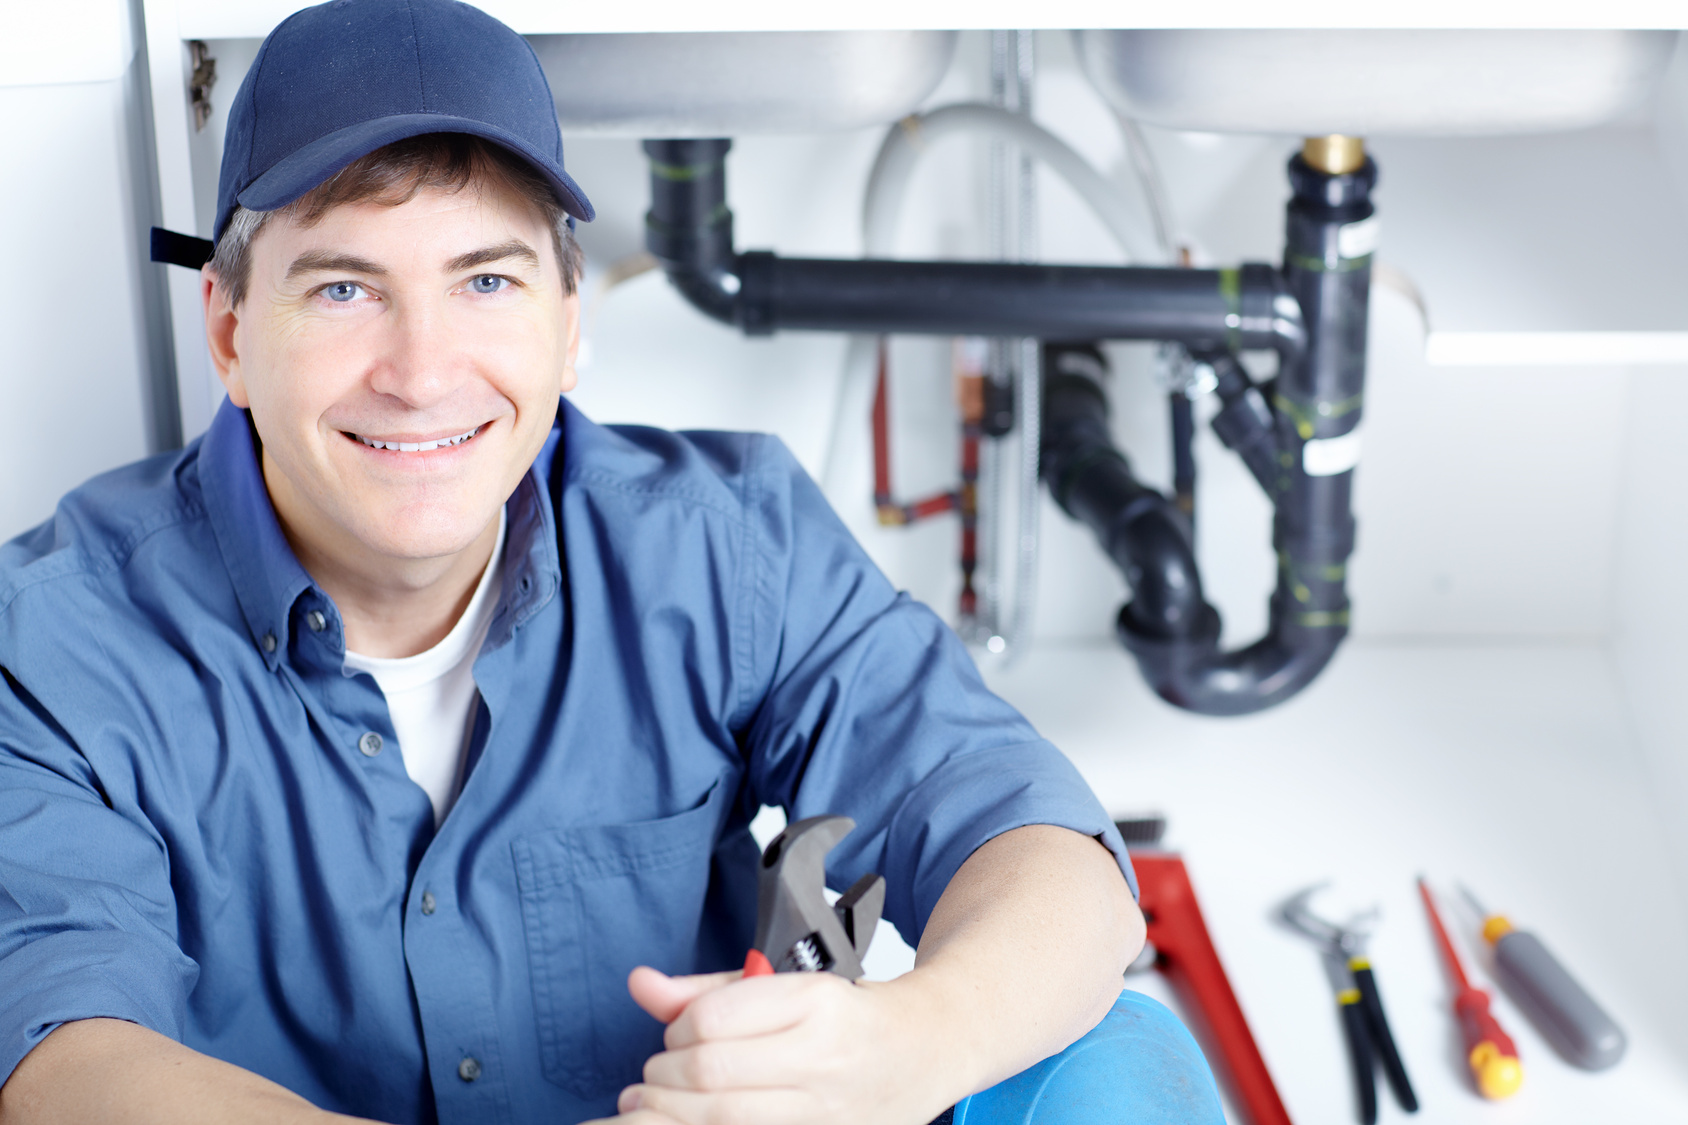 Drain Cleaning Service Near Me Casselberry, FL 32707